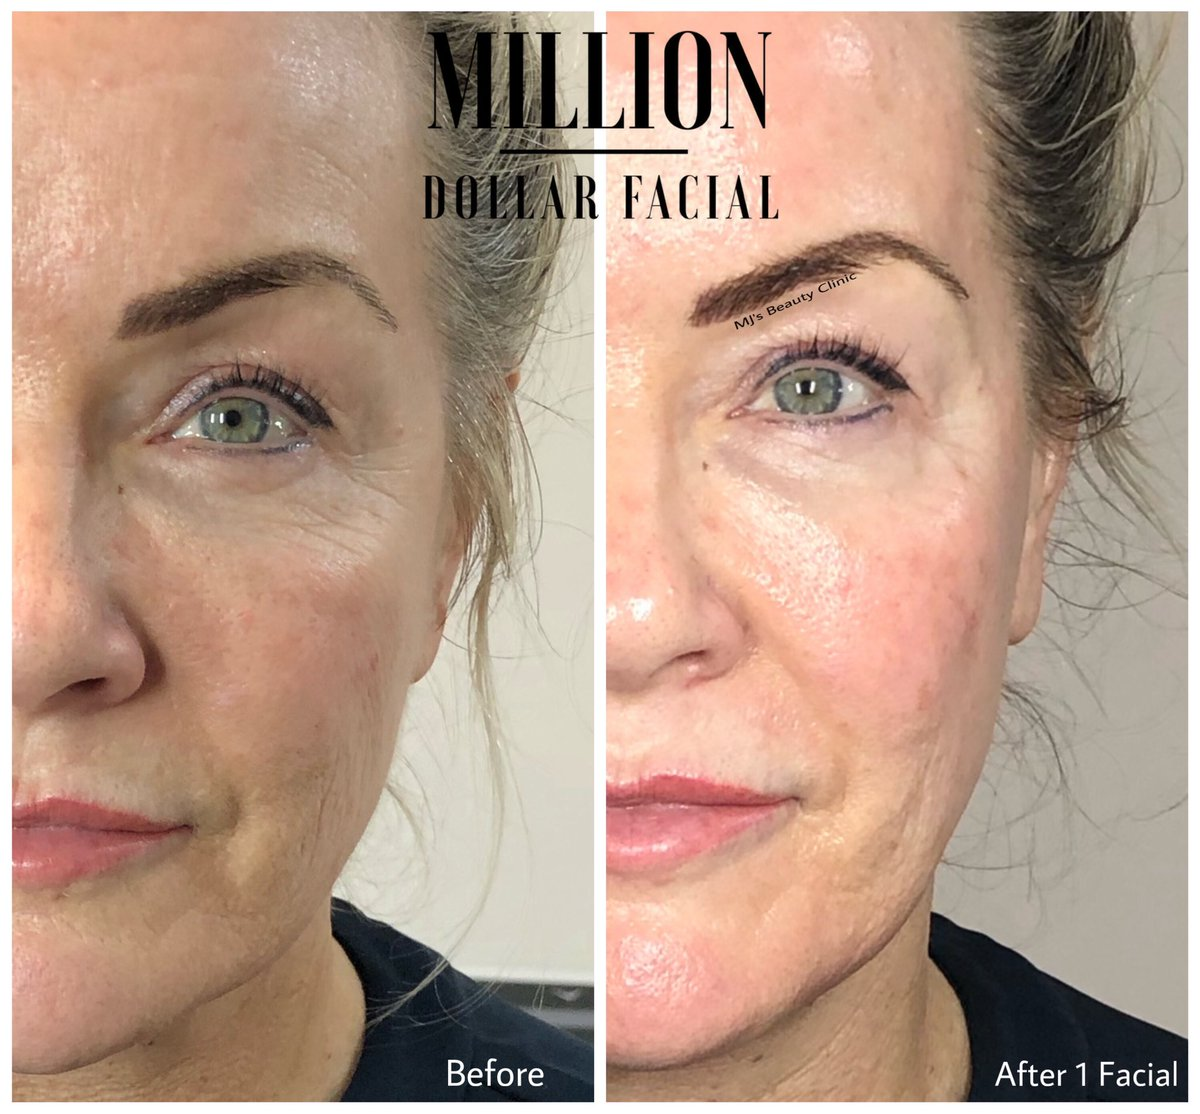 IT'S A MILLION DOLLAR© MONDAY  No Filters No Edits Just another Client looking a Million Dollars!!  More infohttps://www.mjsbeautyclinic.co.uk/million-dollar-facials …  #royton #mjsbeautyclinic #manchester #platinumtech #glowingskin #naturalglow #skin #milliondollarfacials #facials #miraclemask #iceglobespic.twitter.com/9GHjgdeb5L